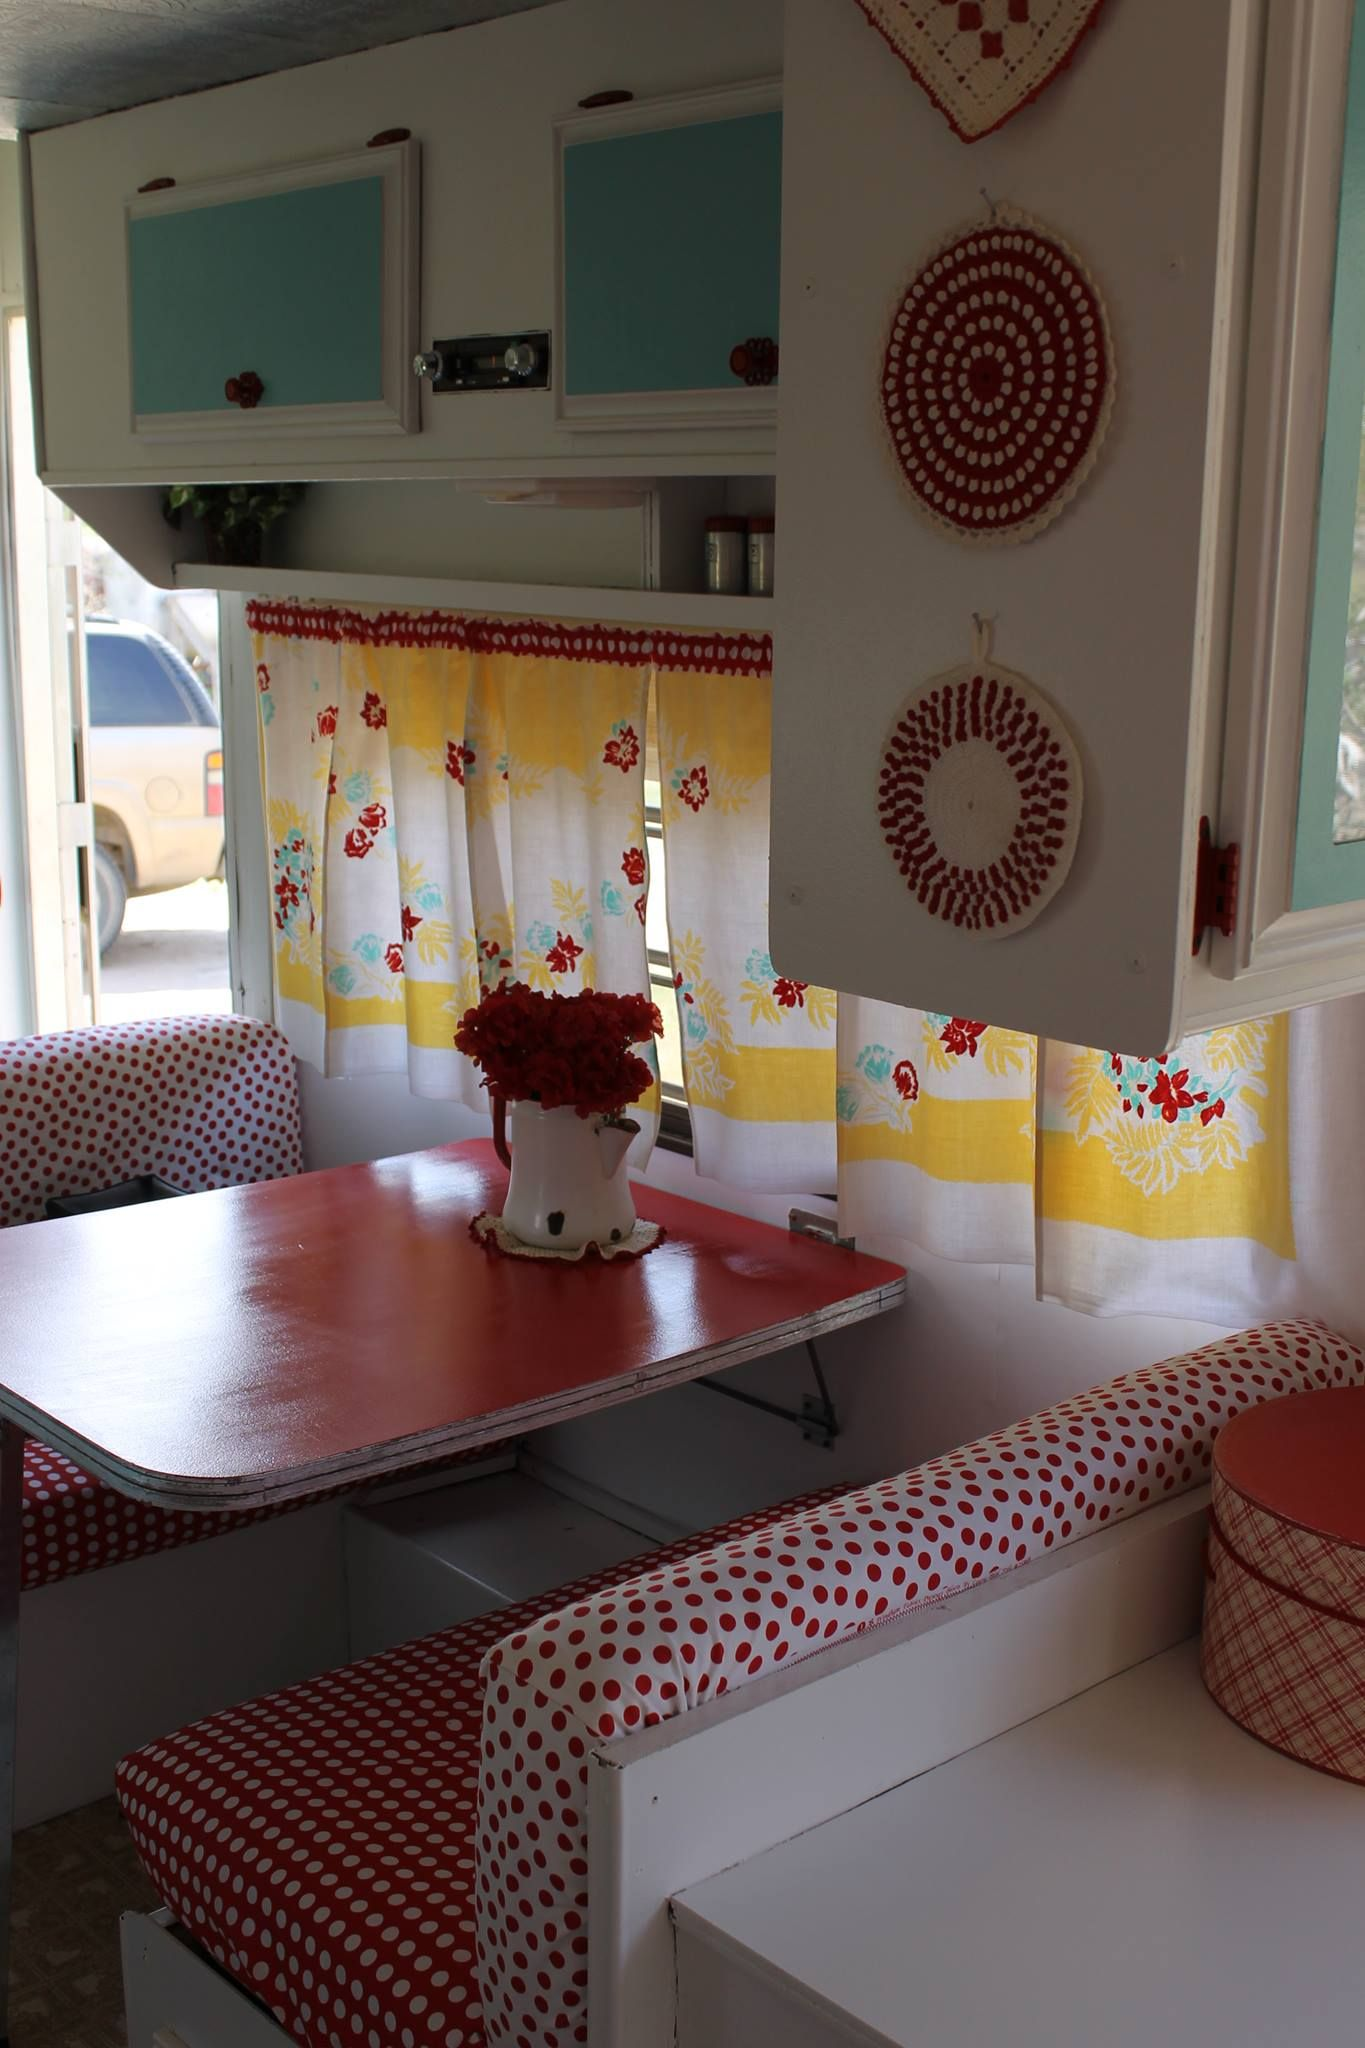 Retro camper curtains - My 1984 Camper Redo Vintage Tablecloth Made Into Curtains